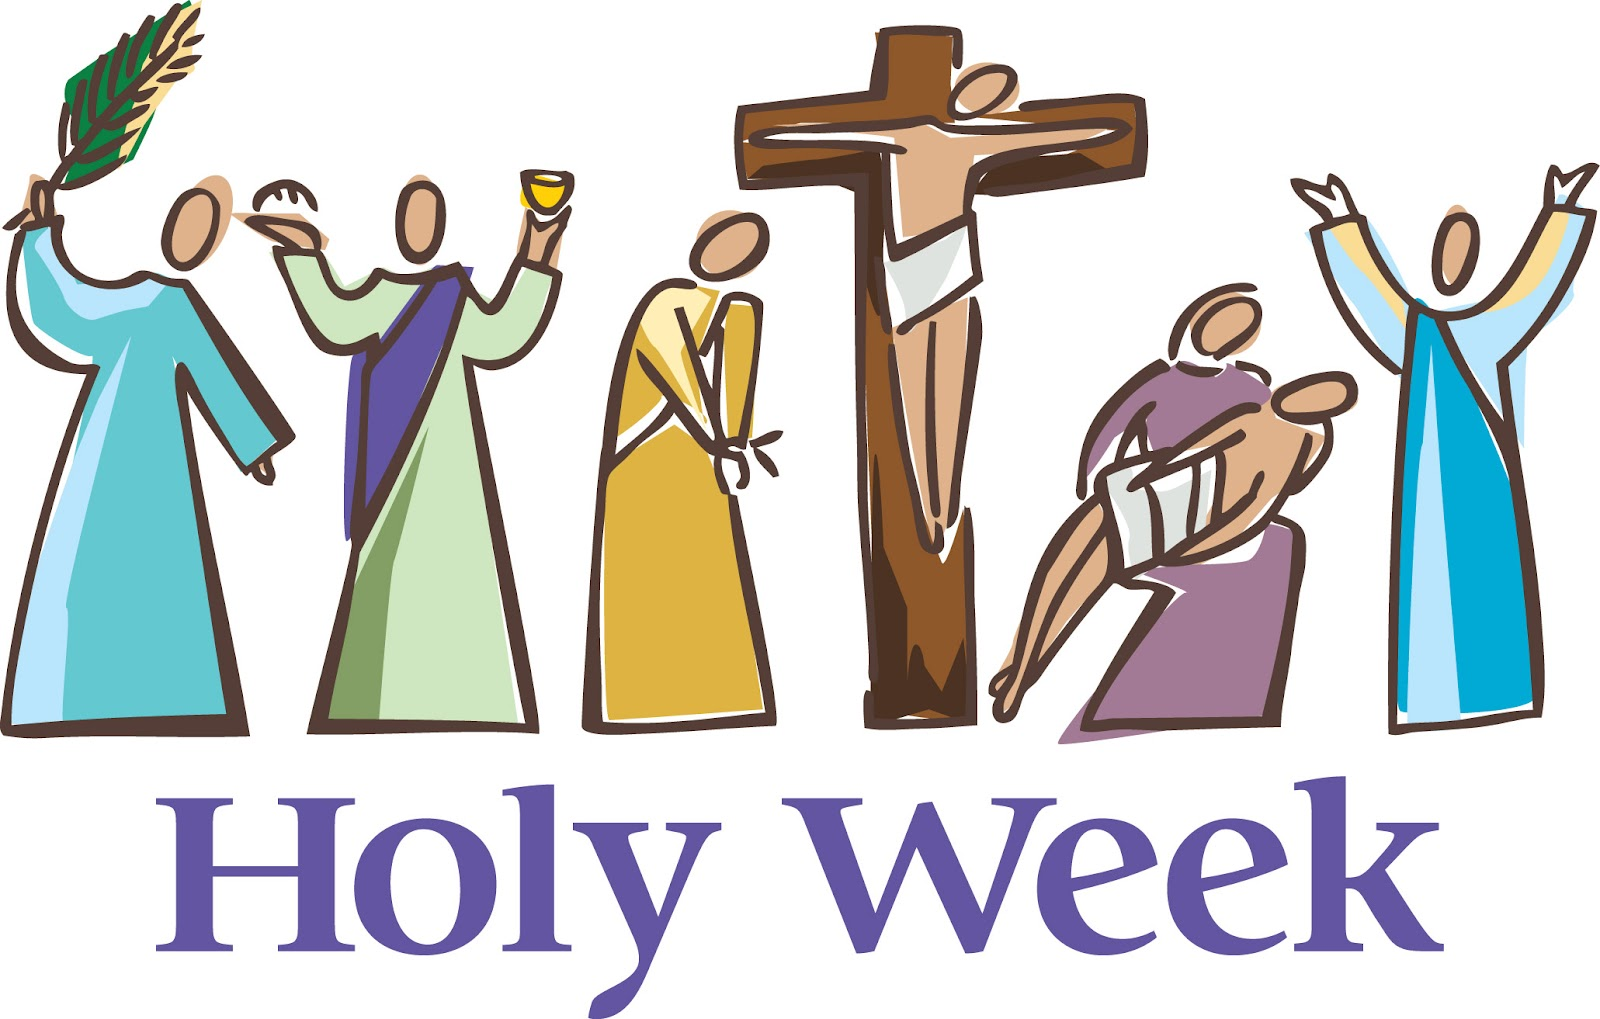 Maundy clipart roman catholic. Daily devotions thursday of